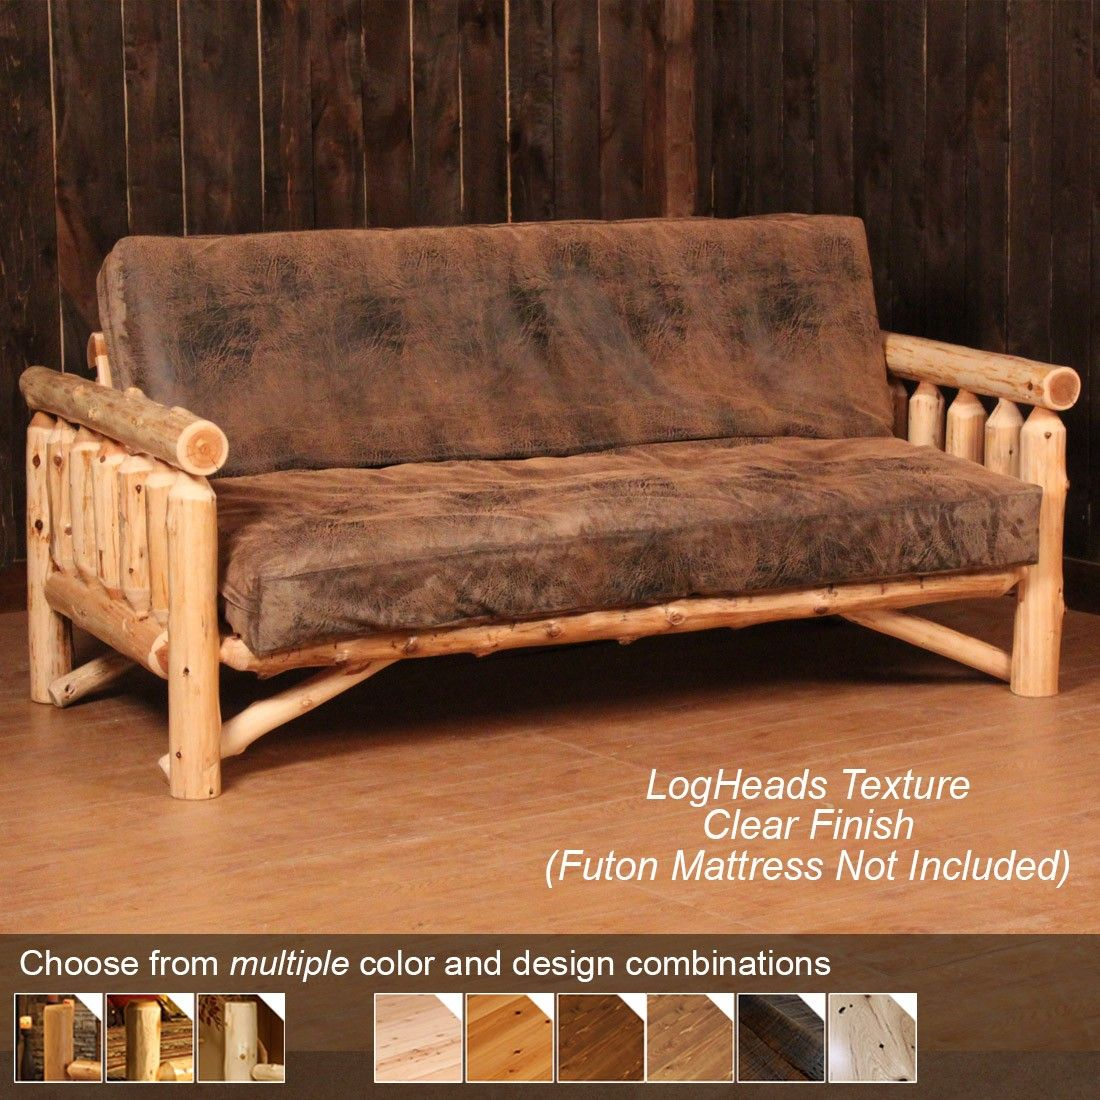 lodge sofa cover barker and stonehouse bed log futon rustic ideas for barndo pinterest